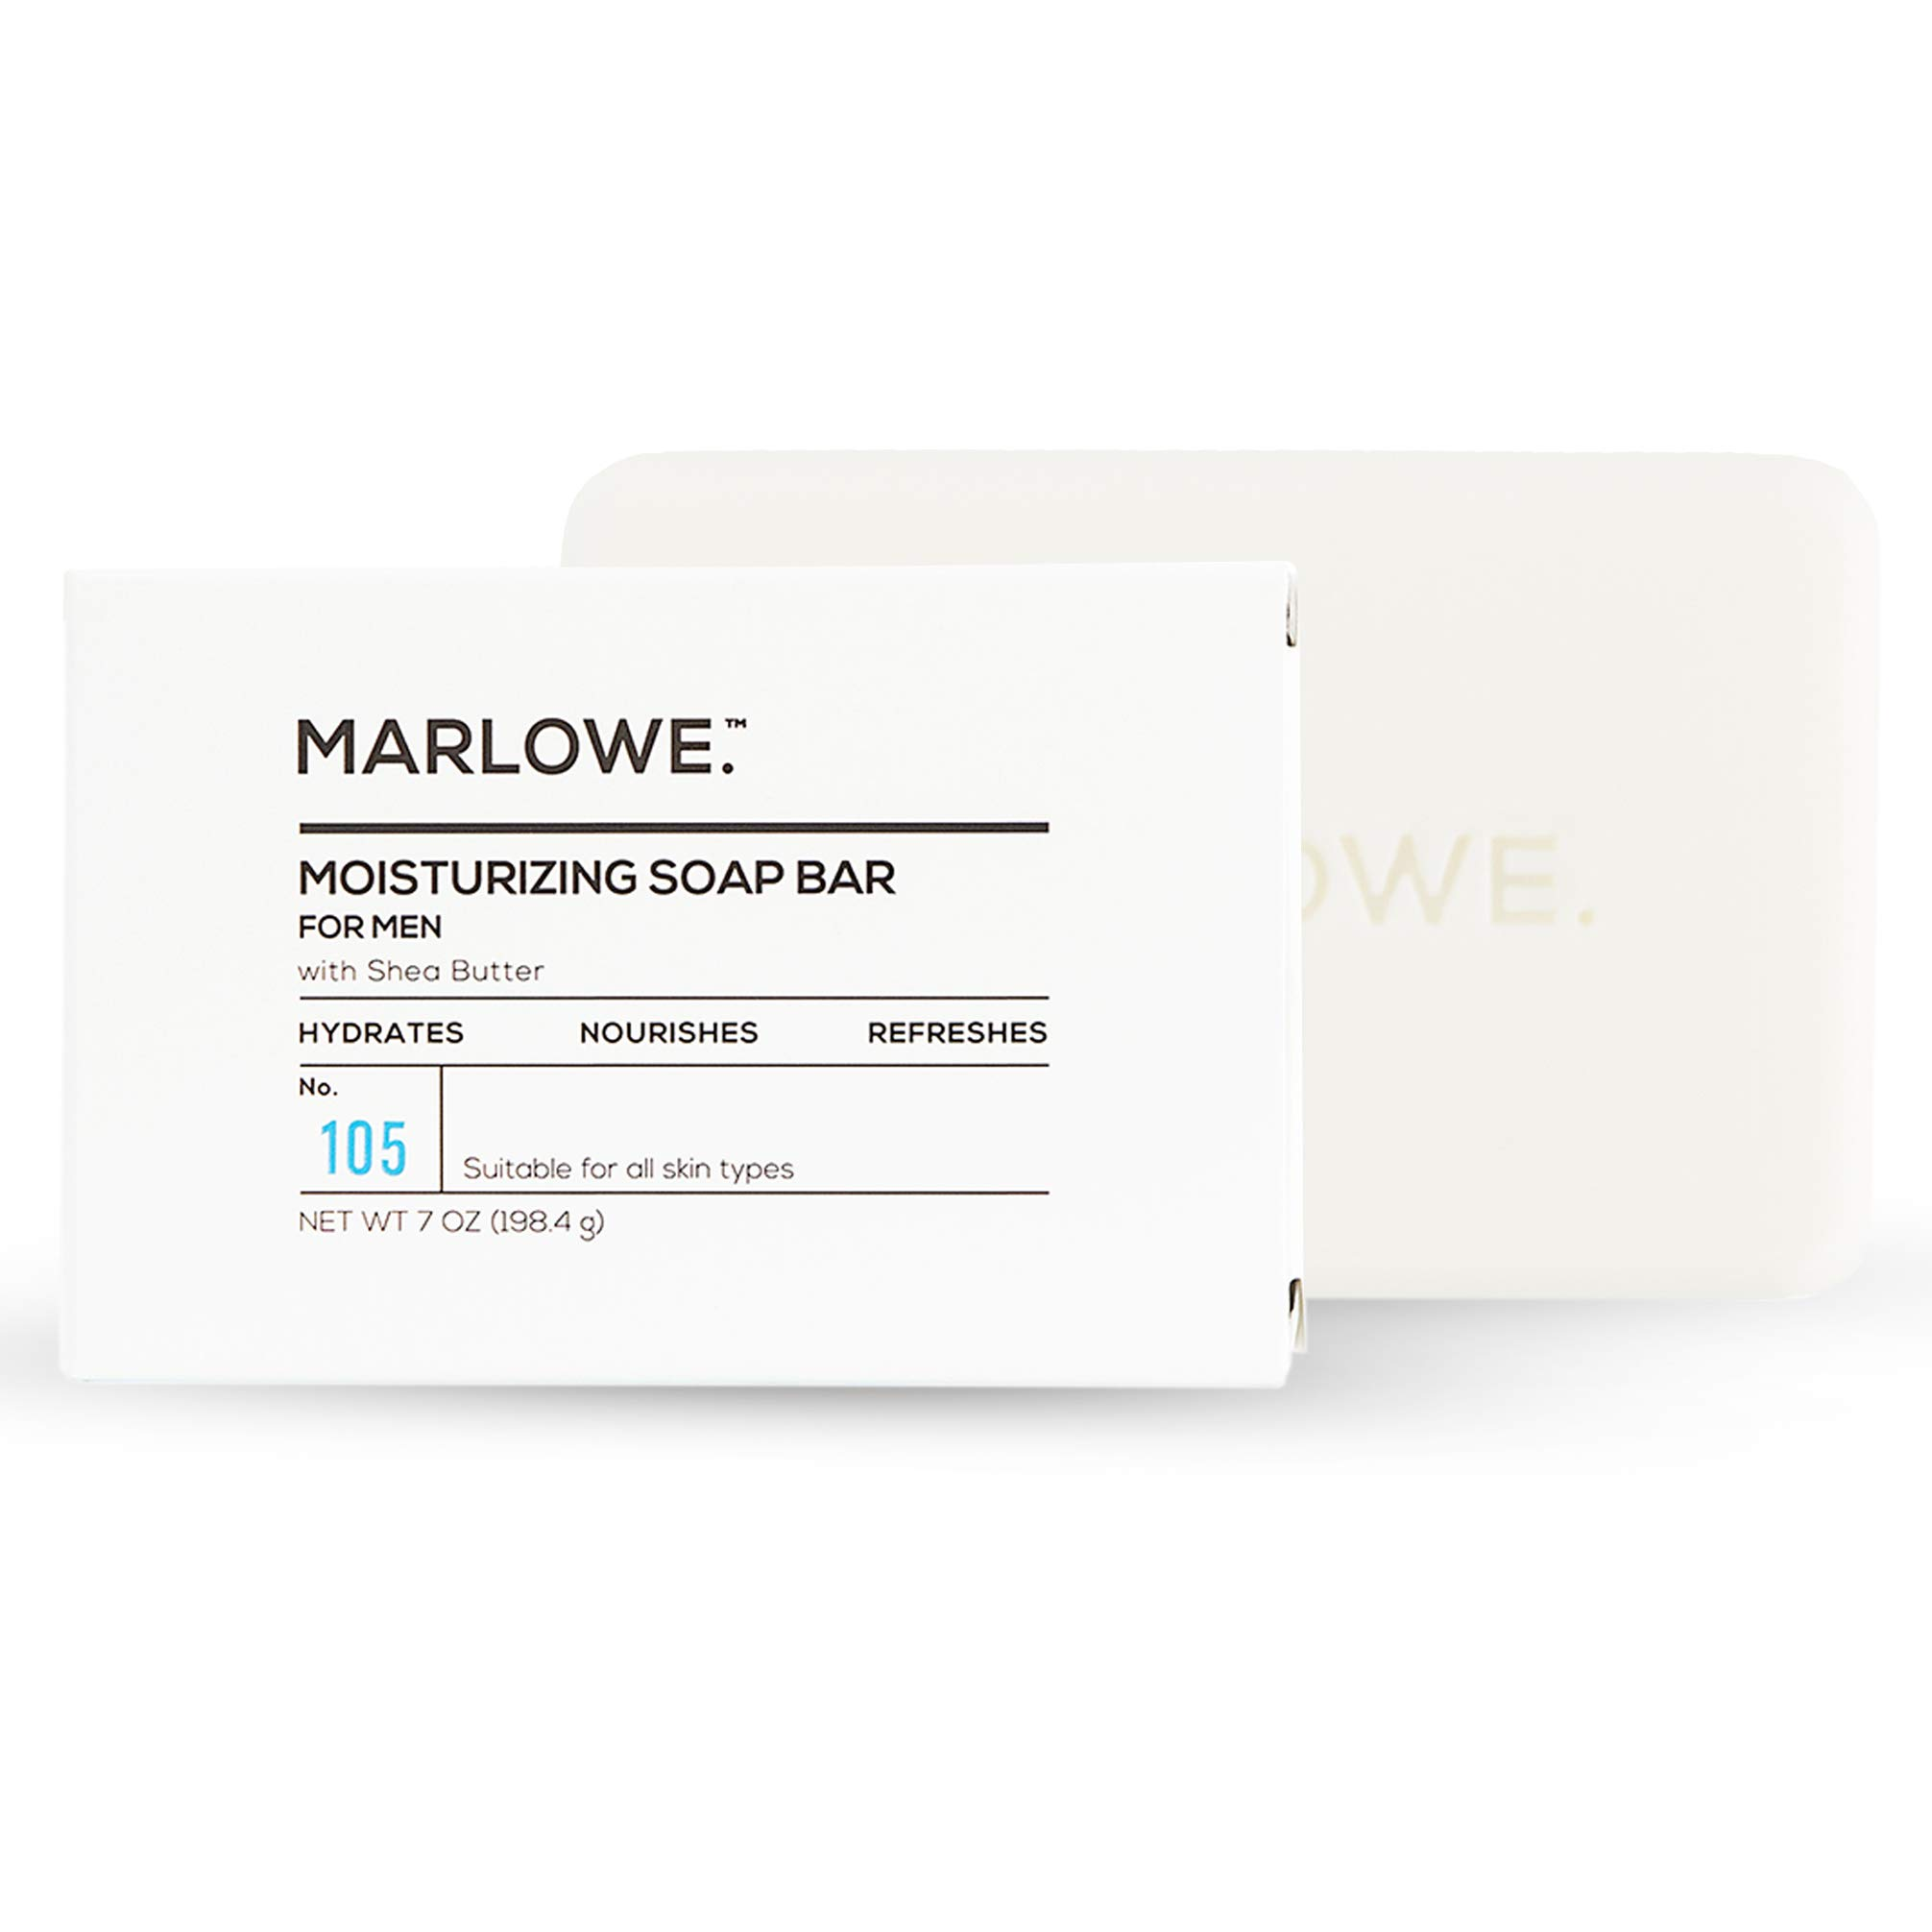 MARLOWE. No. 105 Body Moisturizing Soap for Men 7 oz   Made with Shea Butter & Natural Ingredients for Gentle Cleansing   Rich & Creamy Lather   Awesome Scent